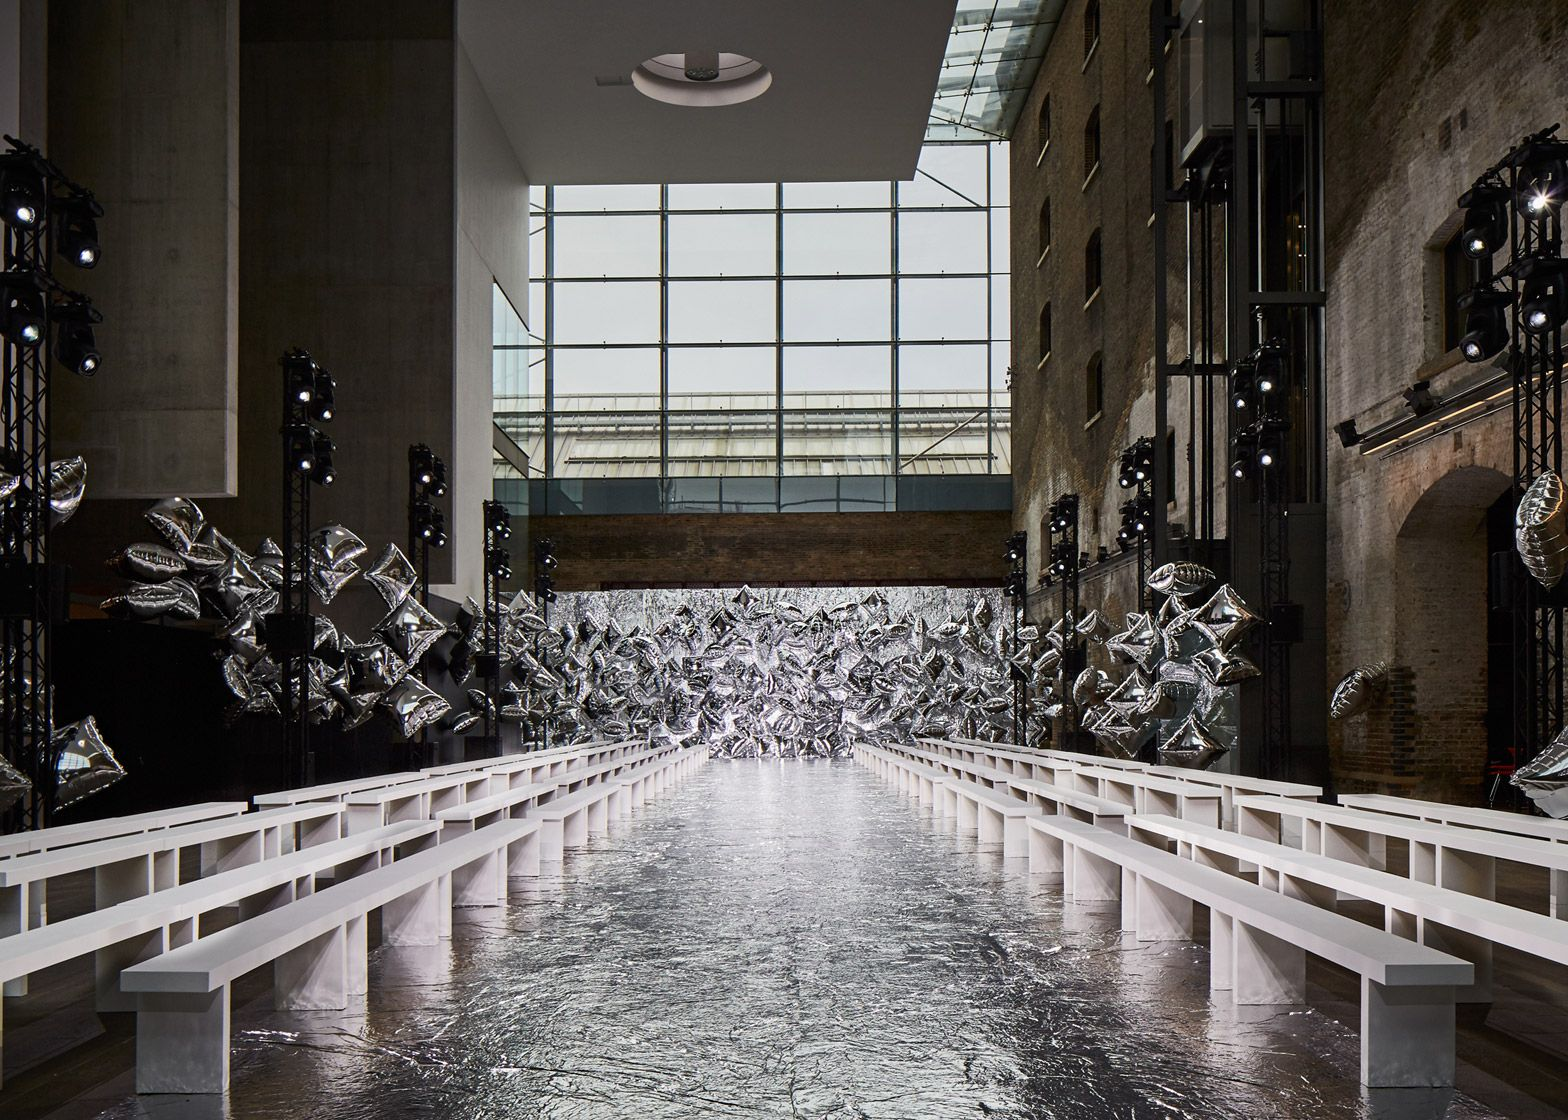 Bureau betak uses silver balloons as backdrop for mary - Fashion show stage design architecture plans ...